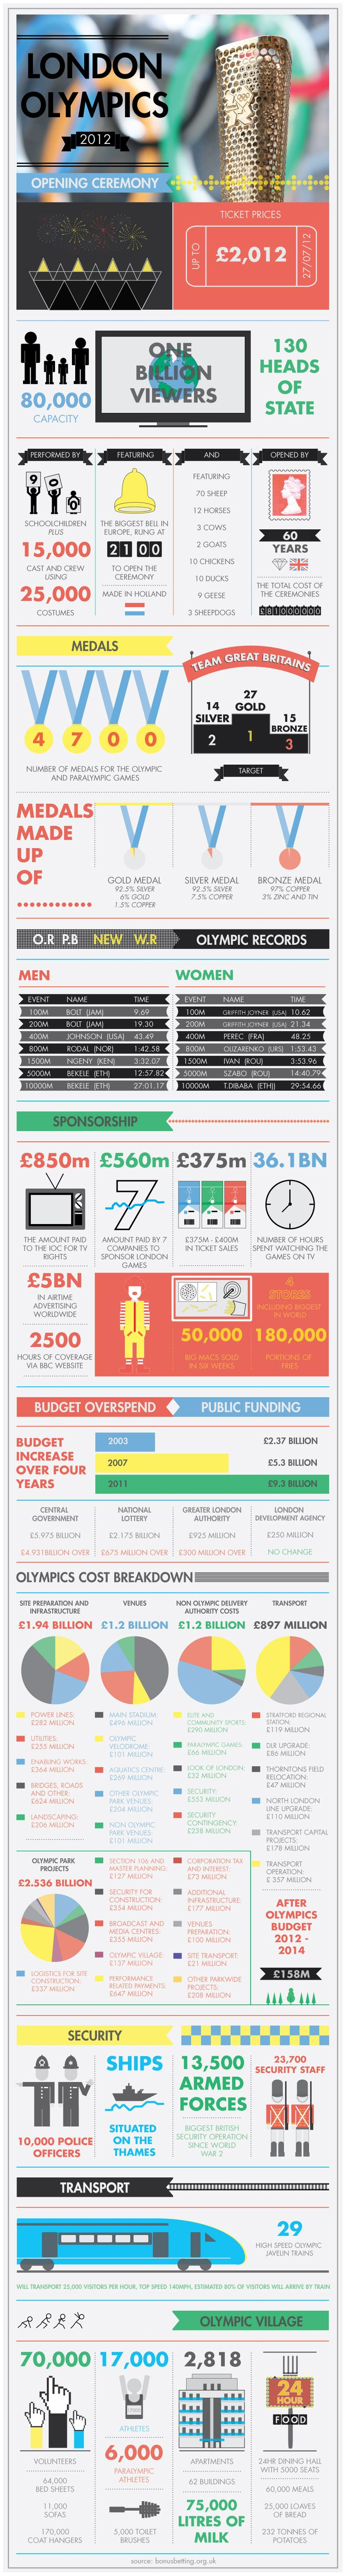 Very detailed infographic on the opening ceramony of the London 2012 olympics